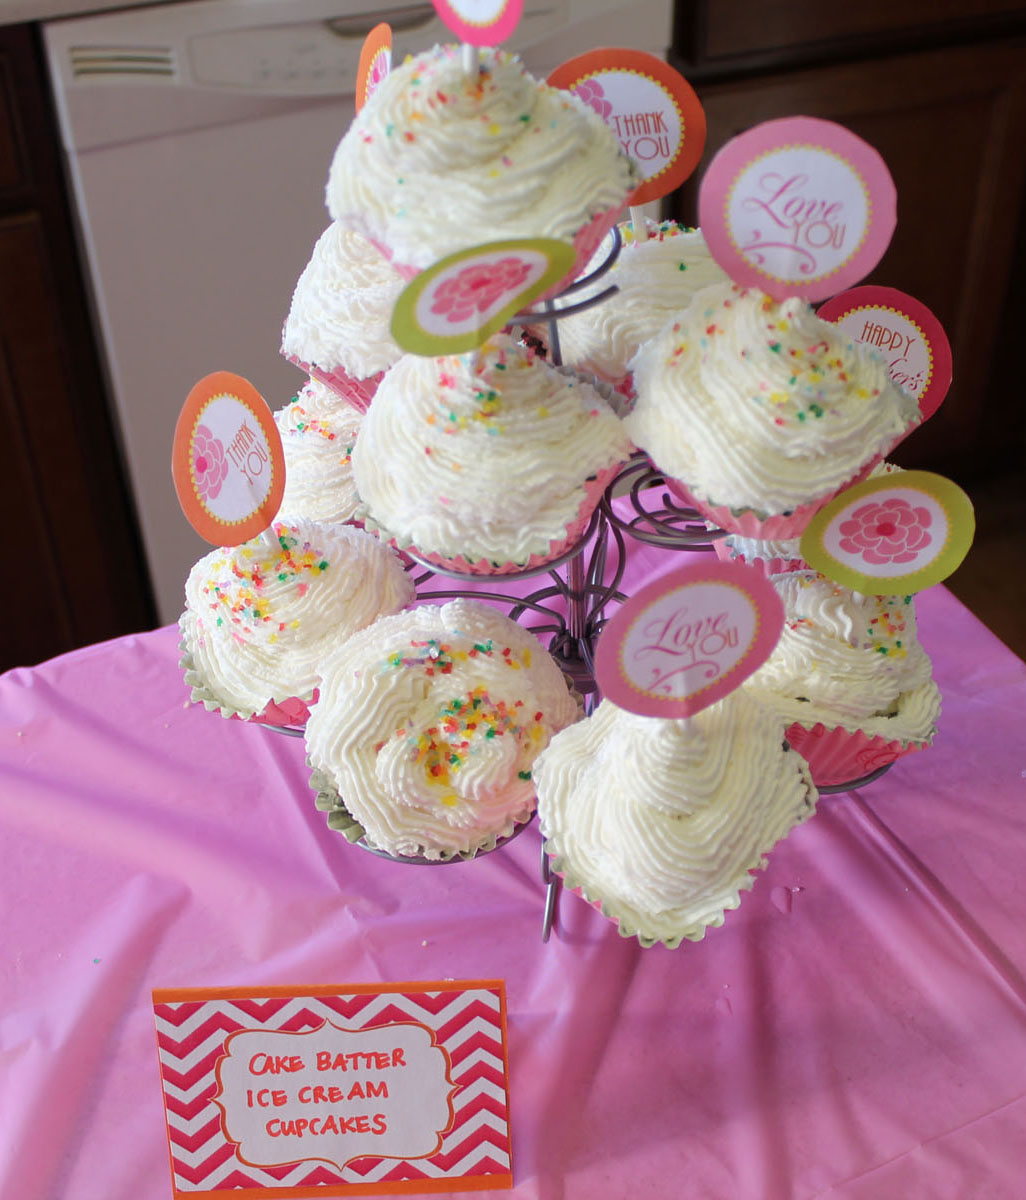 ... 2012/04/ice-cream-cupcakes-and-project-party-weekend-link-up-here.html